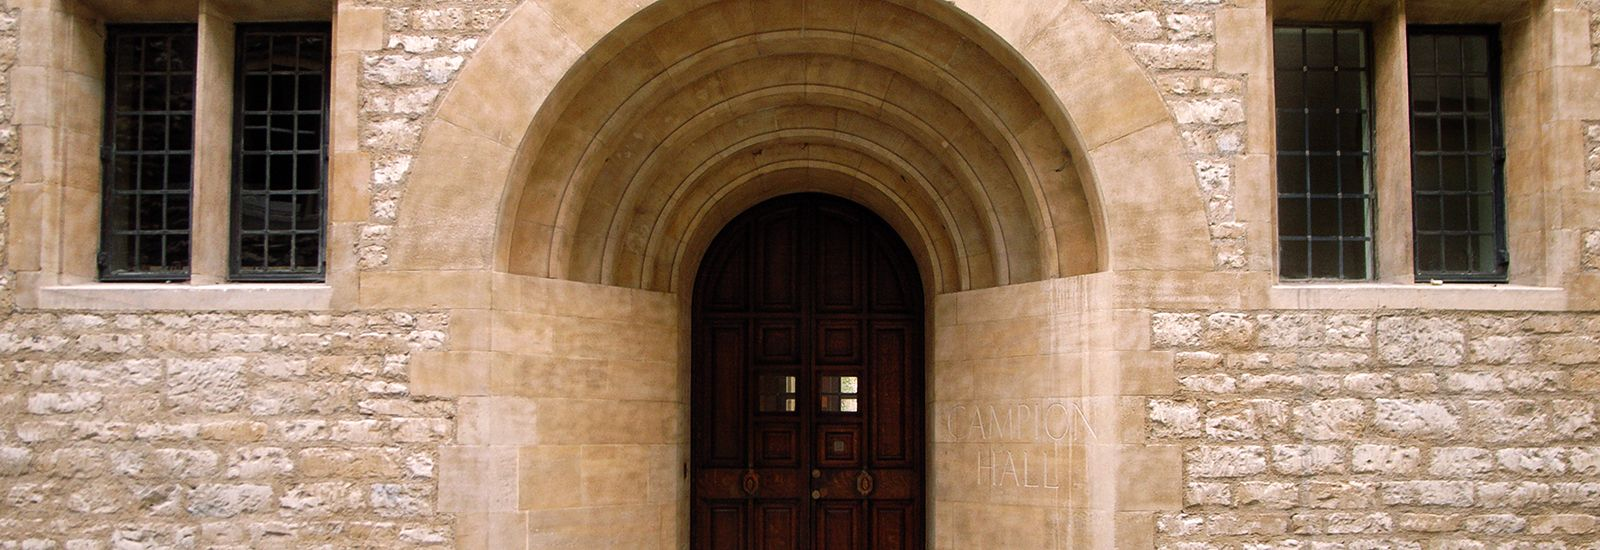 The arched entrance to Campion Hall